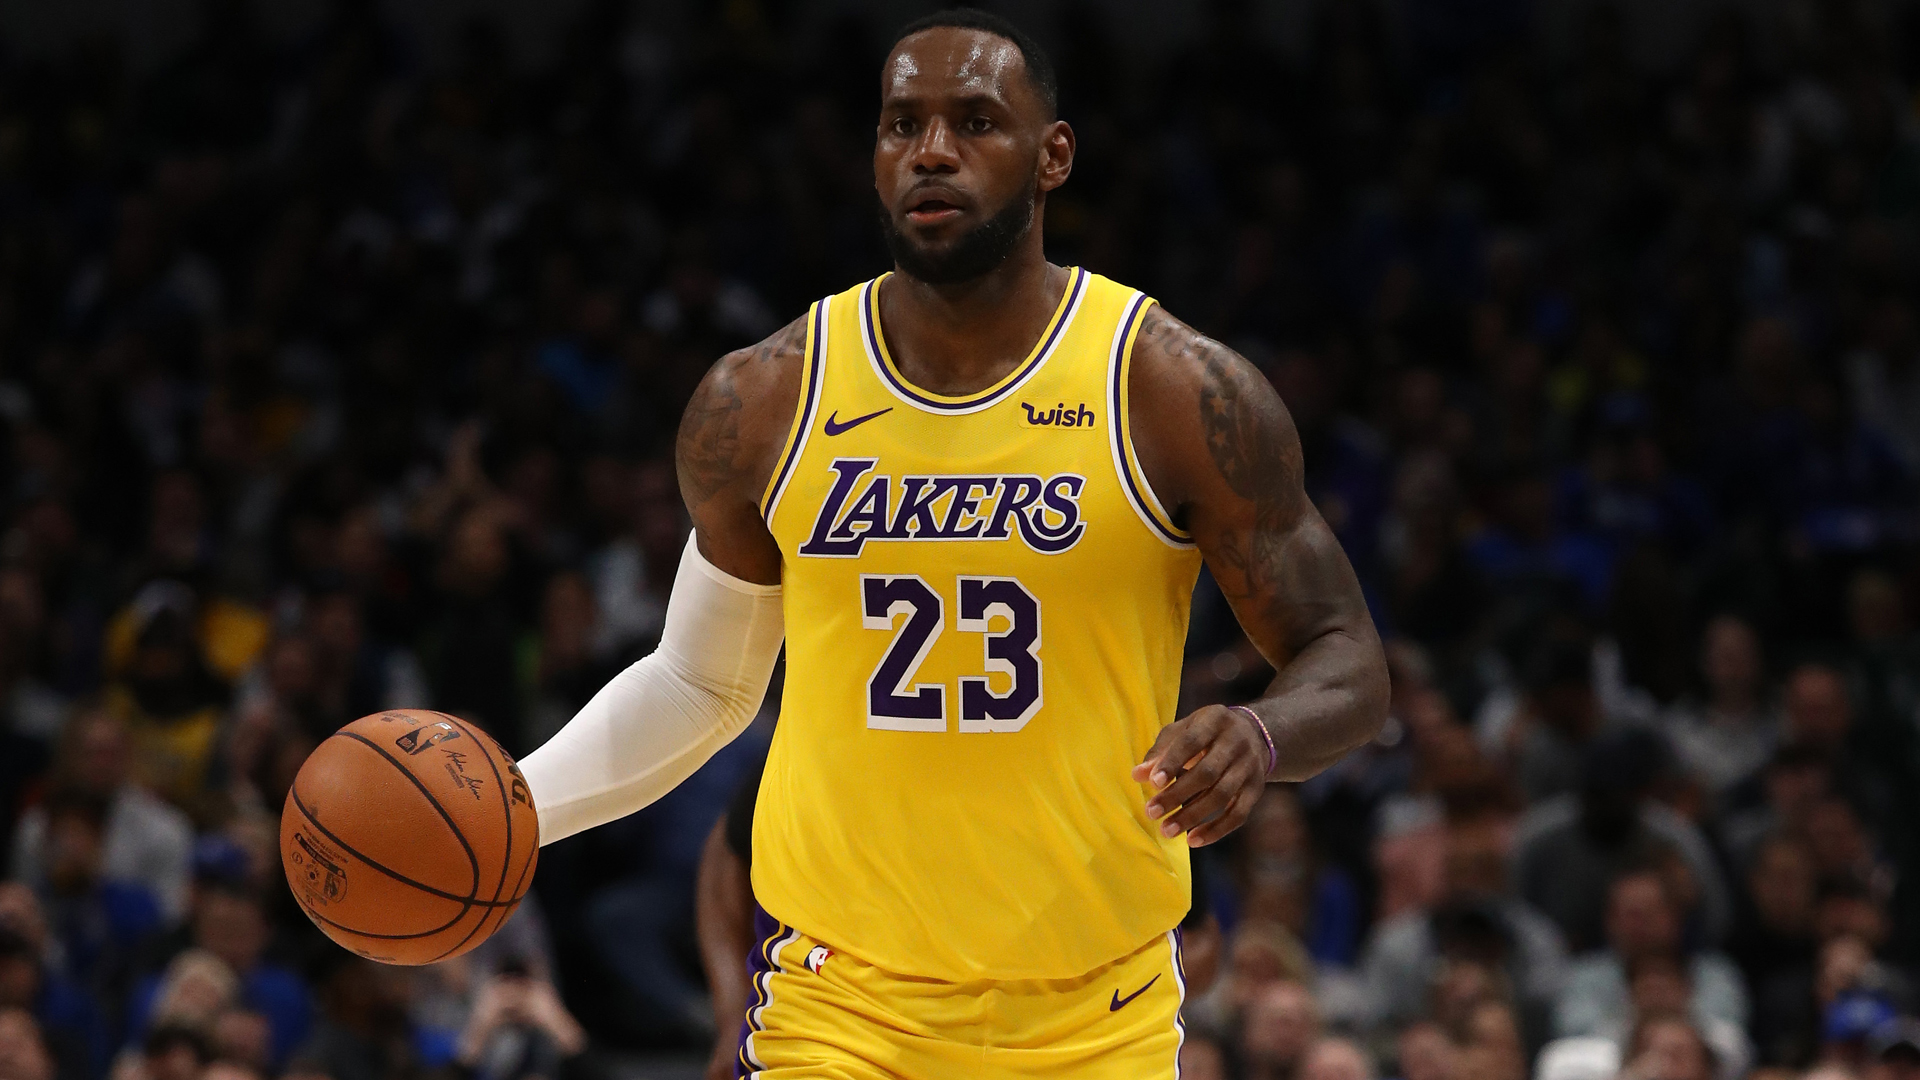 LeBron James and Anthony Davis helped the Los Angeles Lakers cruise past the Miami Heat in the NBA.